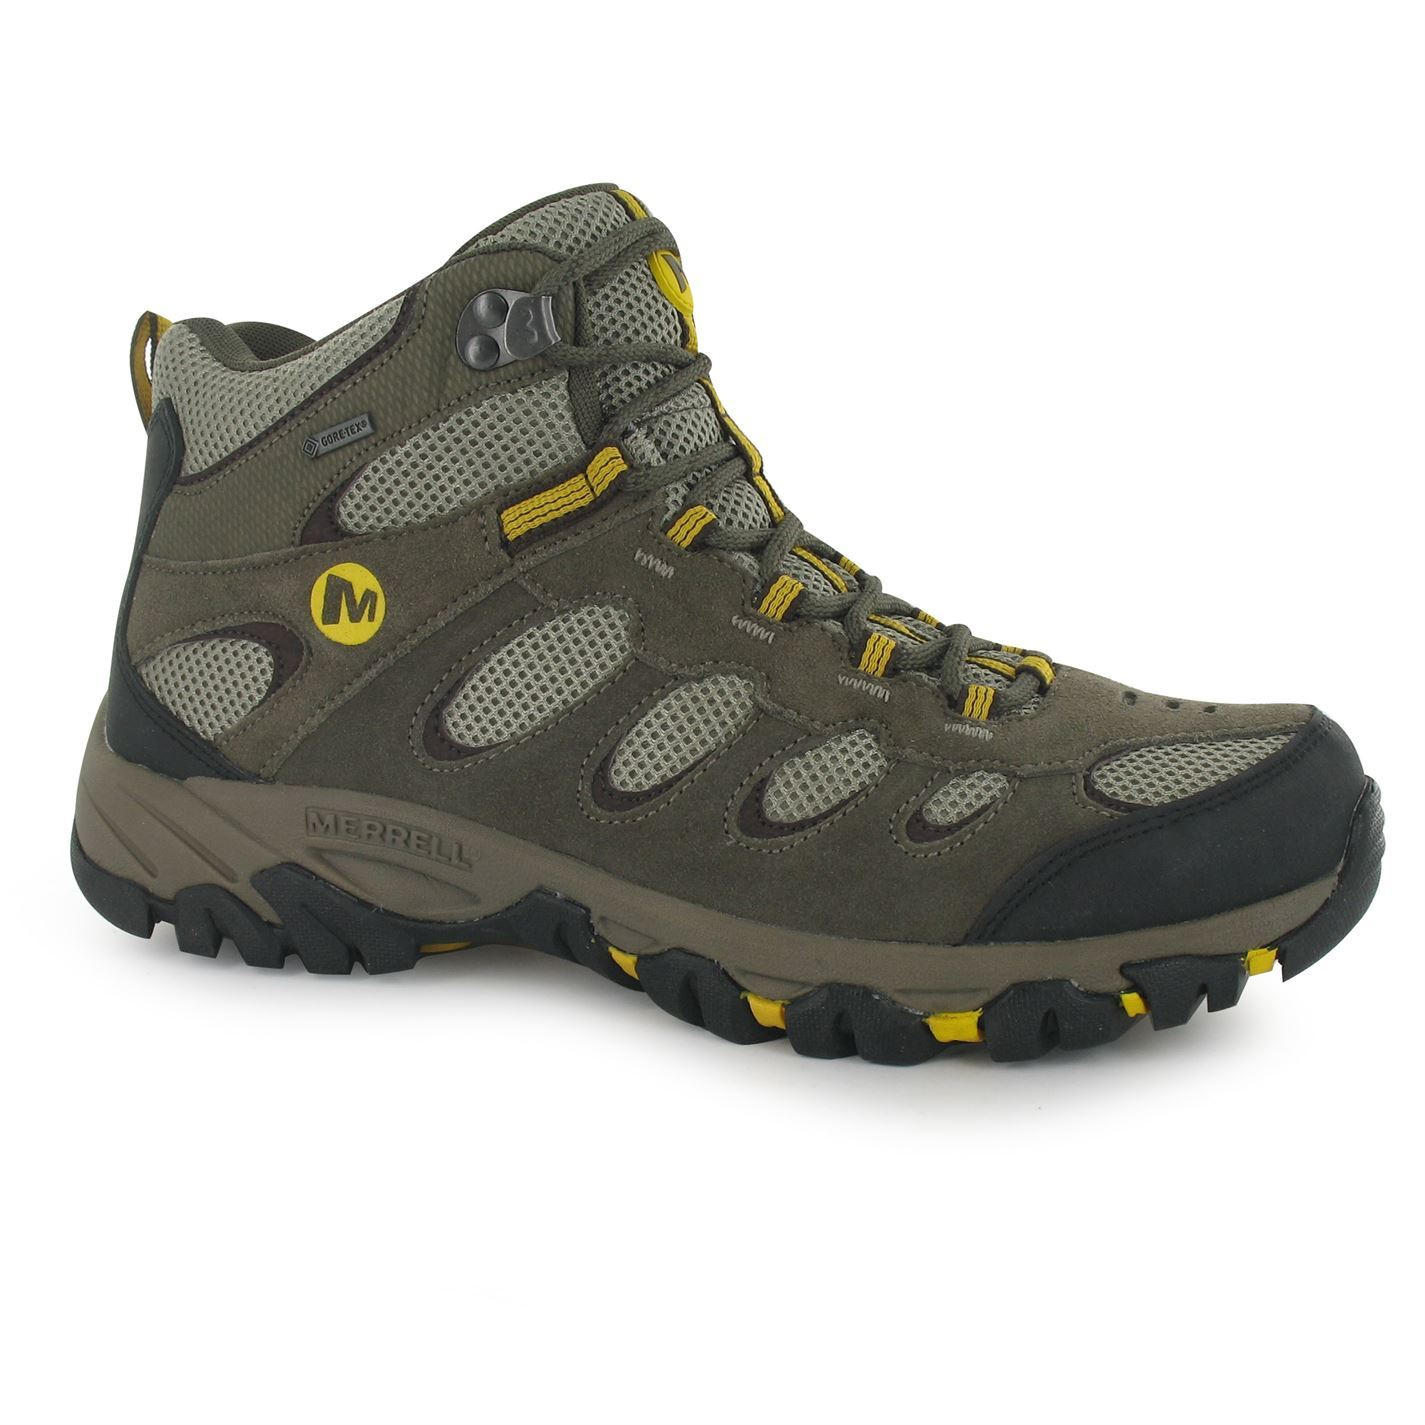 Merrell Ridgepass Low Mens Walking Shoes